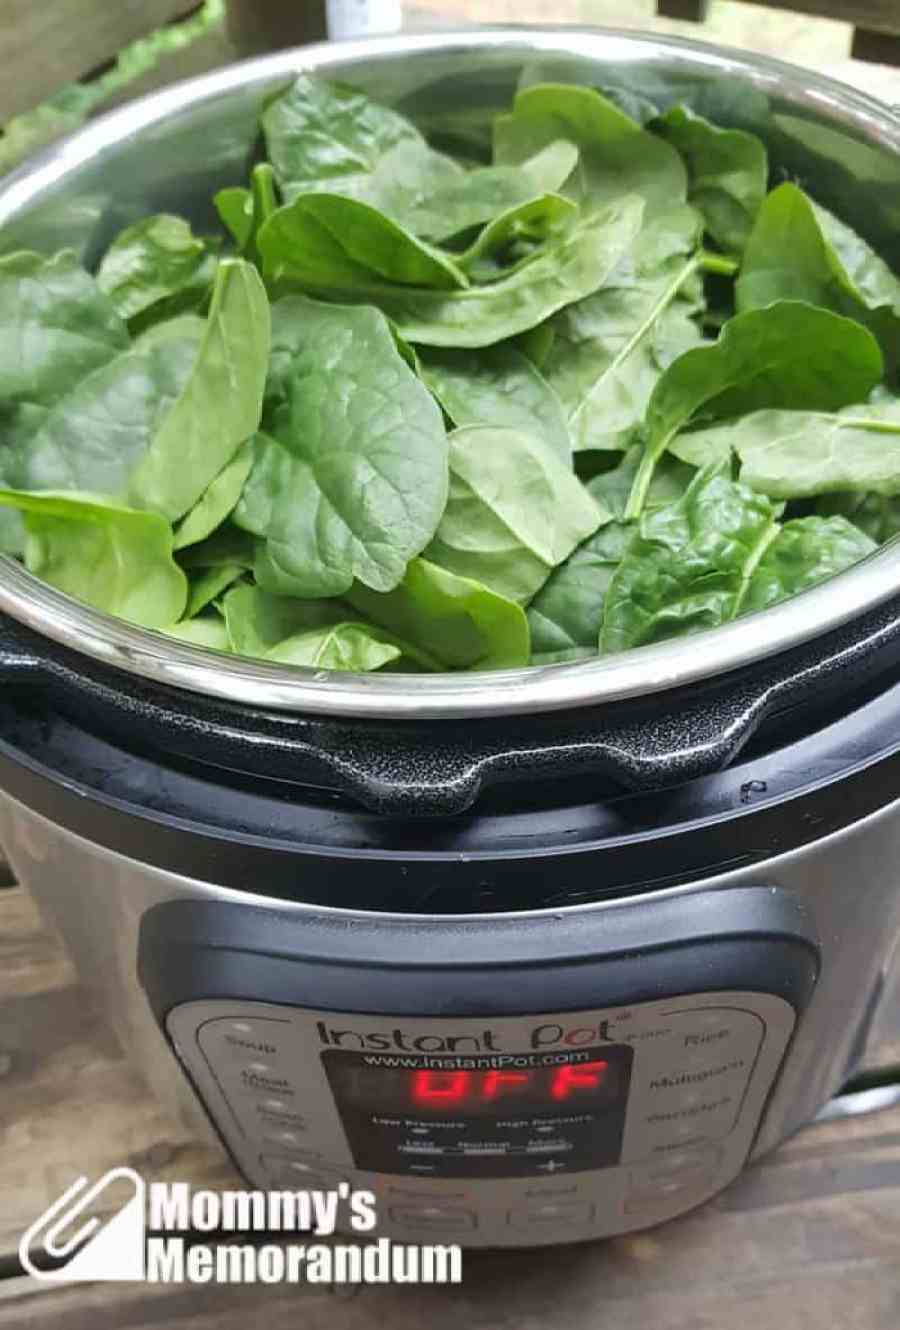 Instant Pot Recipe: Chicken with Mushrooms and Artichoke Hearts adding the spinach